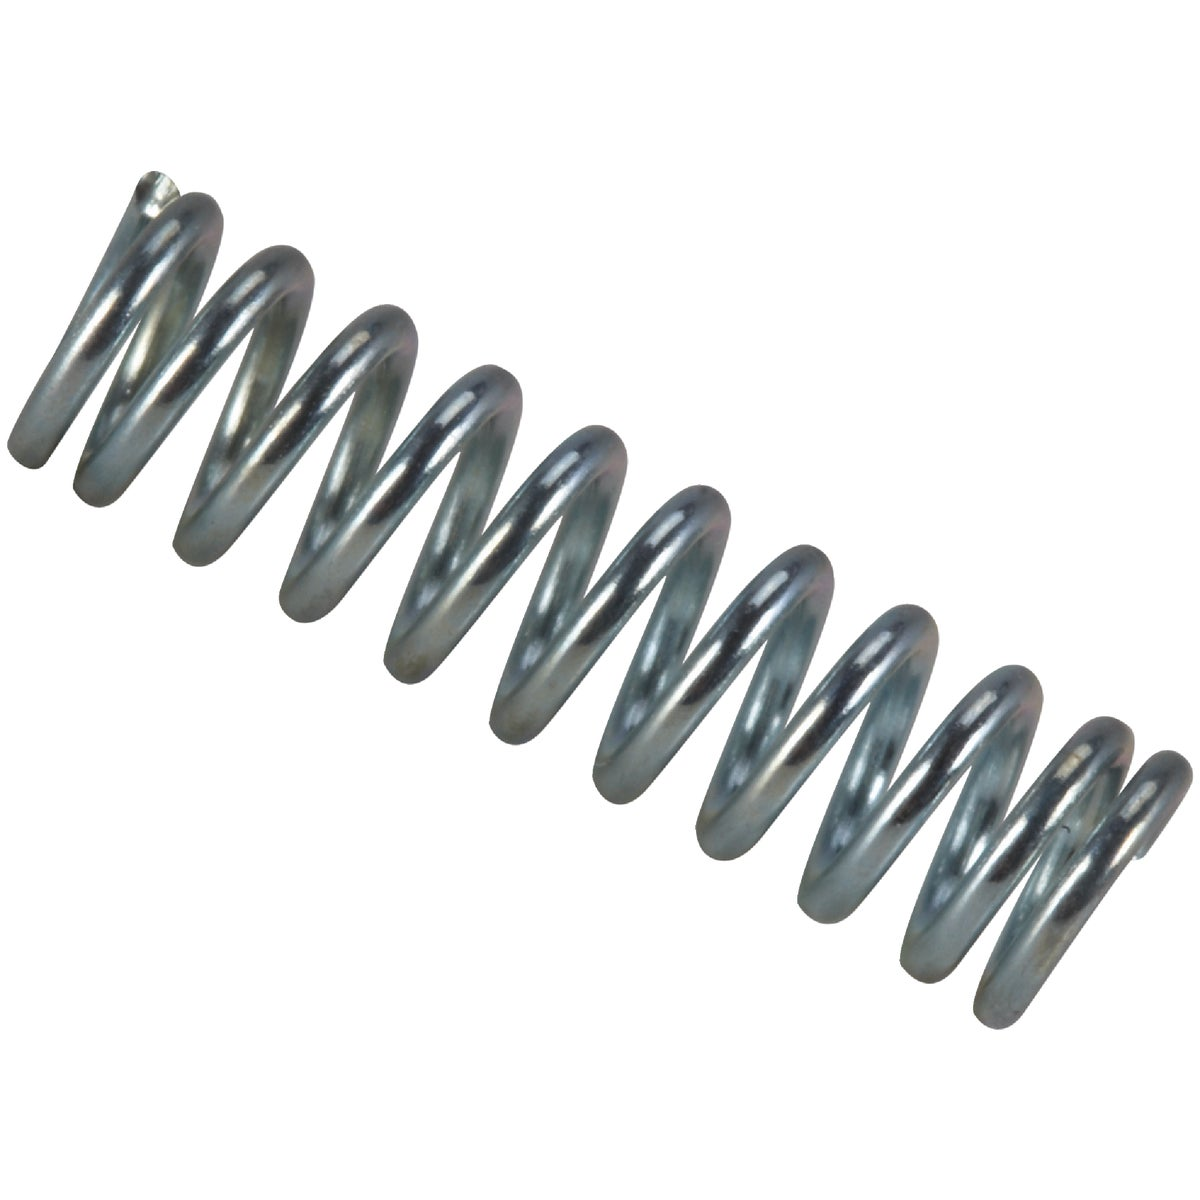 COMPRESSION SPRING - C-766 by Century Spring Corp